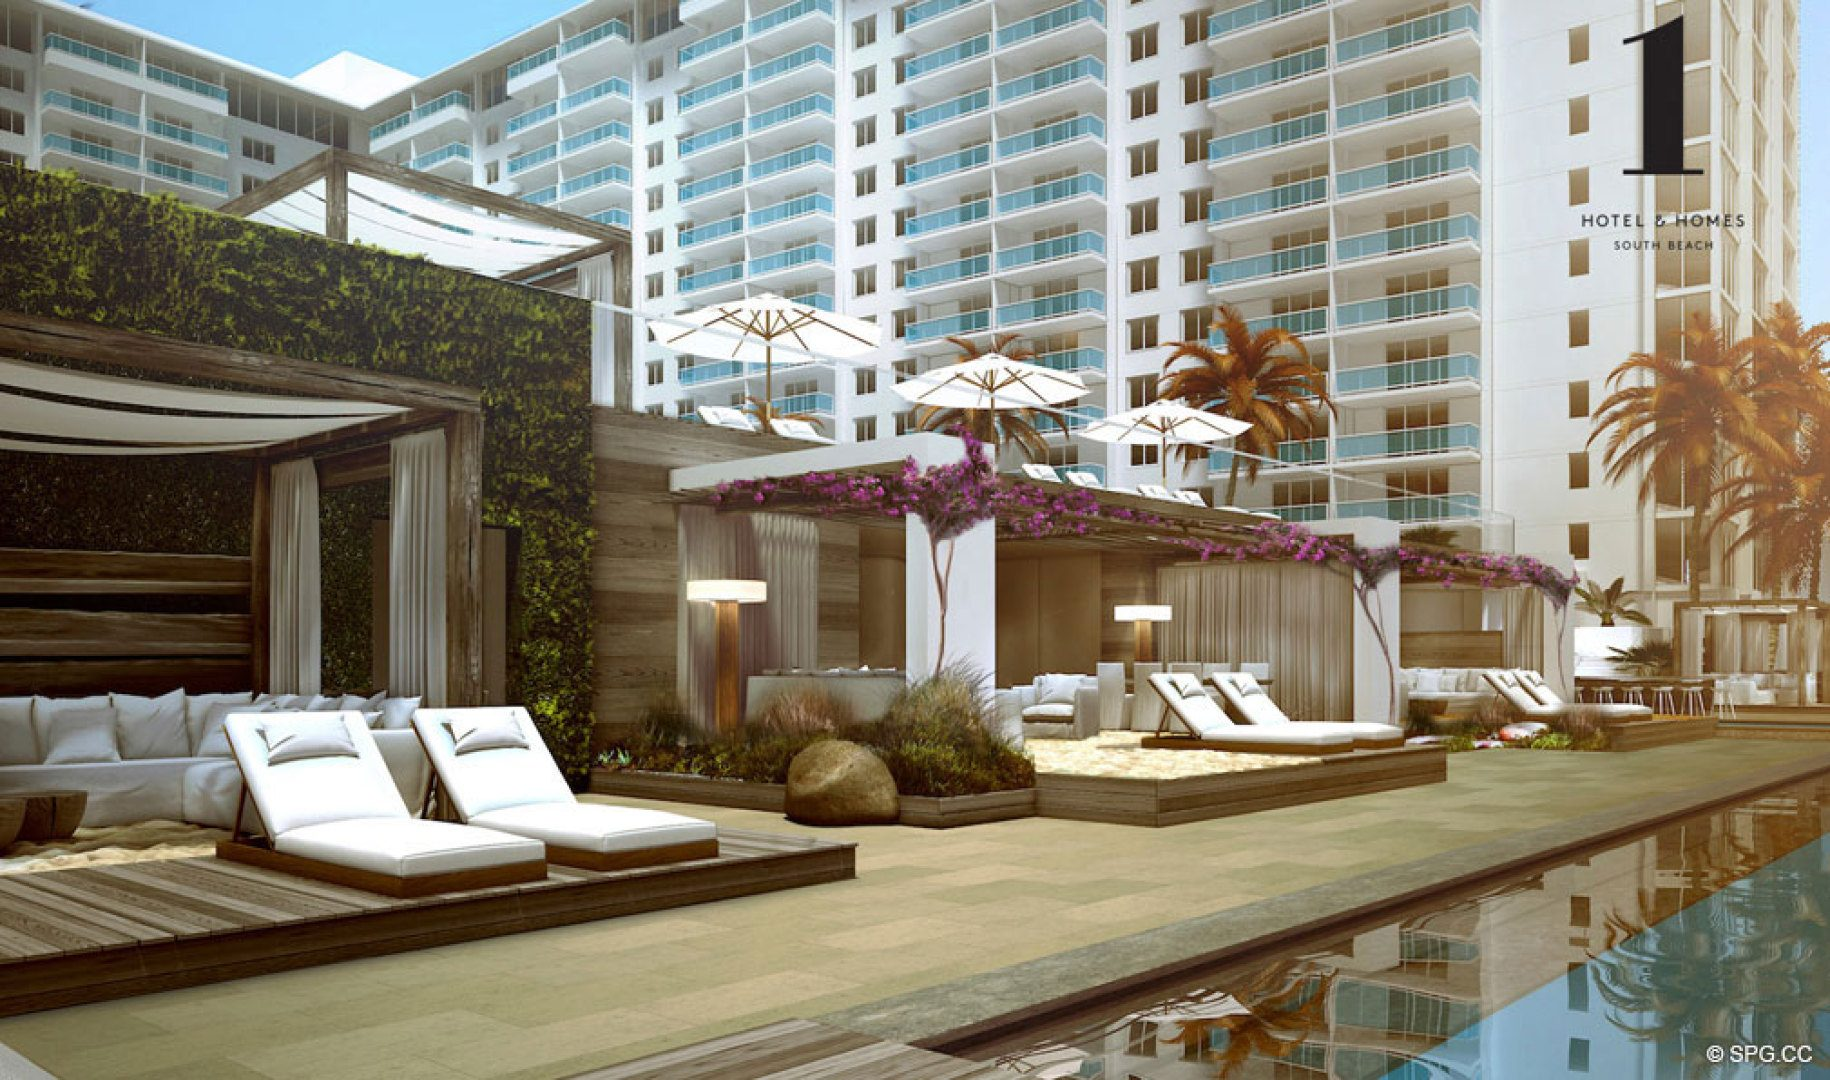 Poolside Cabanas at 1 Hotel & Homes South Beach, Luxury Oceanfront Condominiums Located at 2399 Collins Ave, Miami Beach, FL 33139